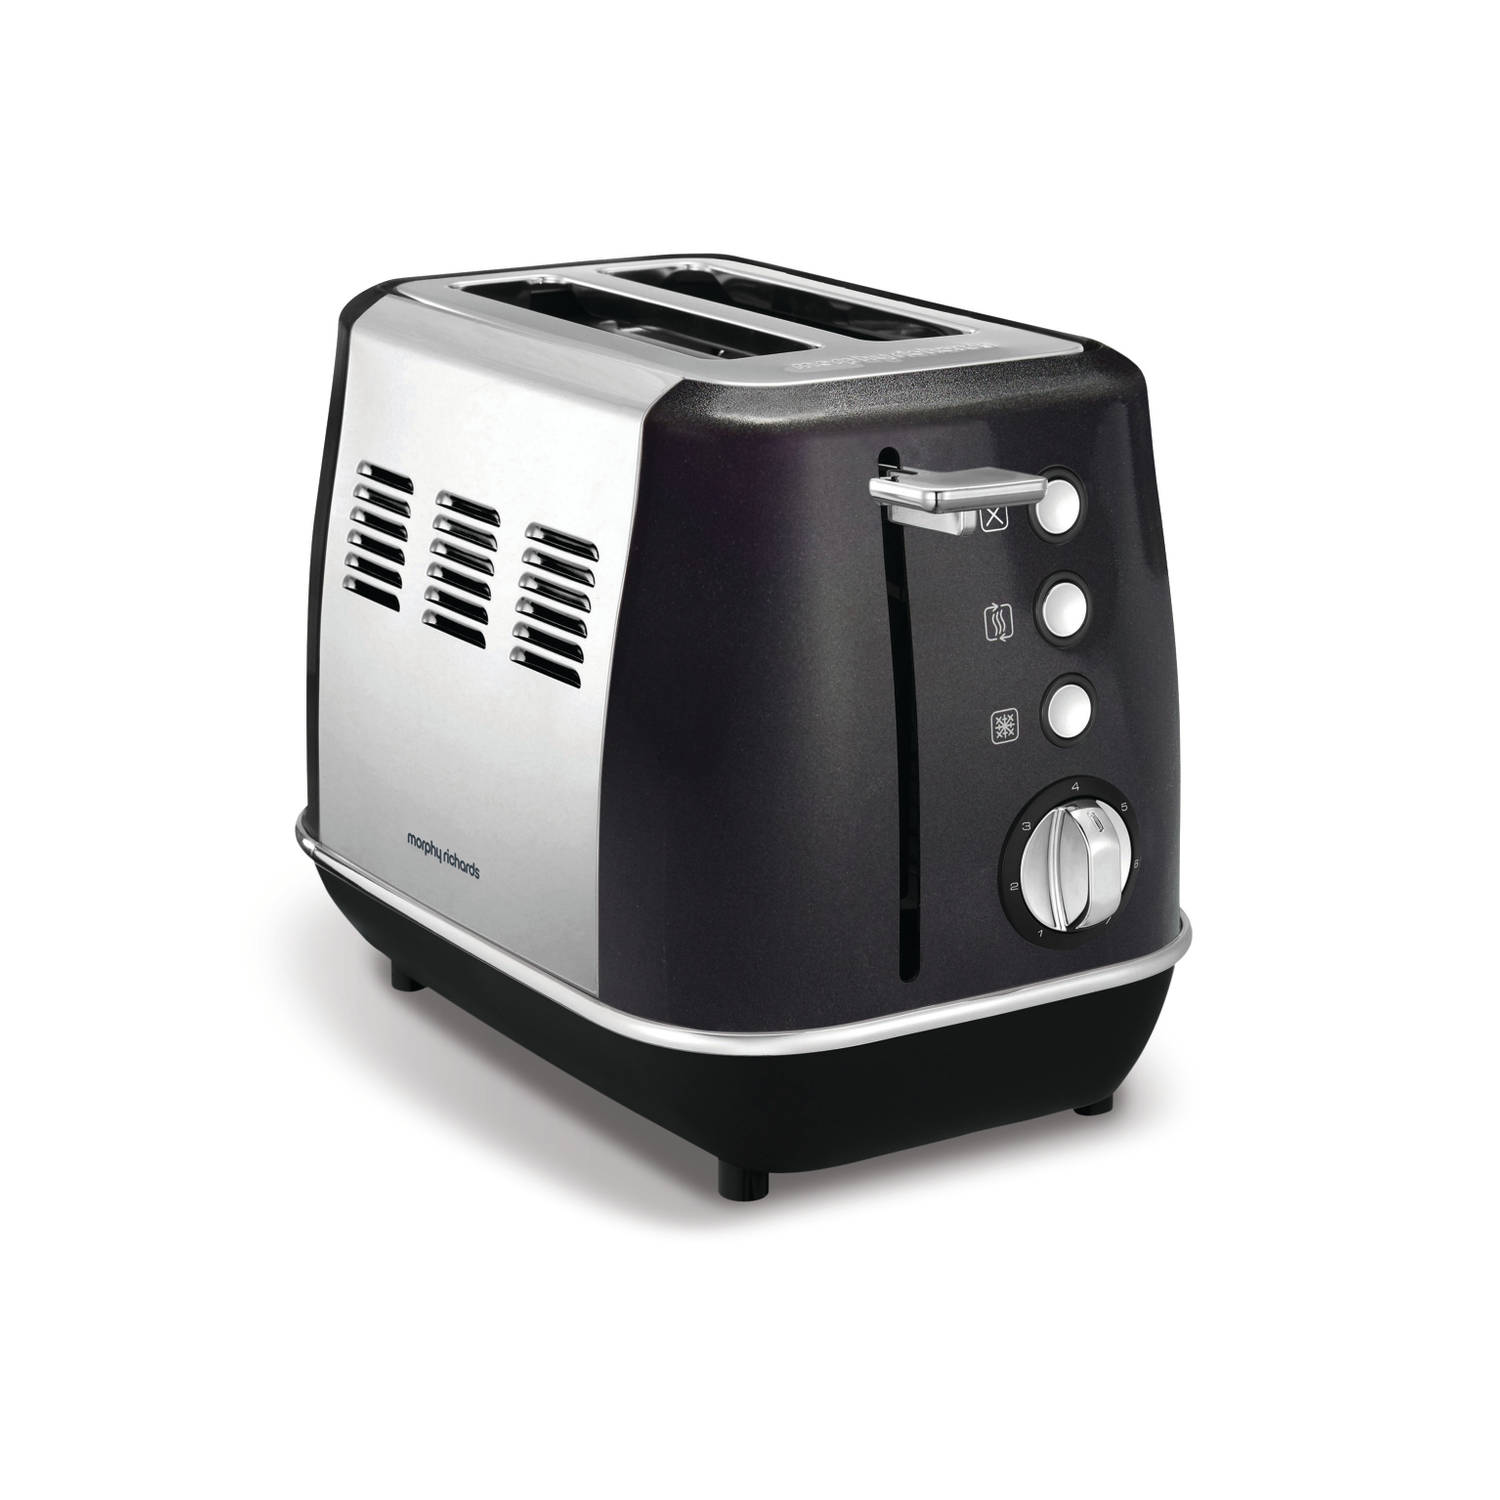 Morphy Richards broodrooster Evoke - zwart